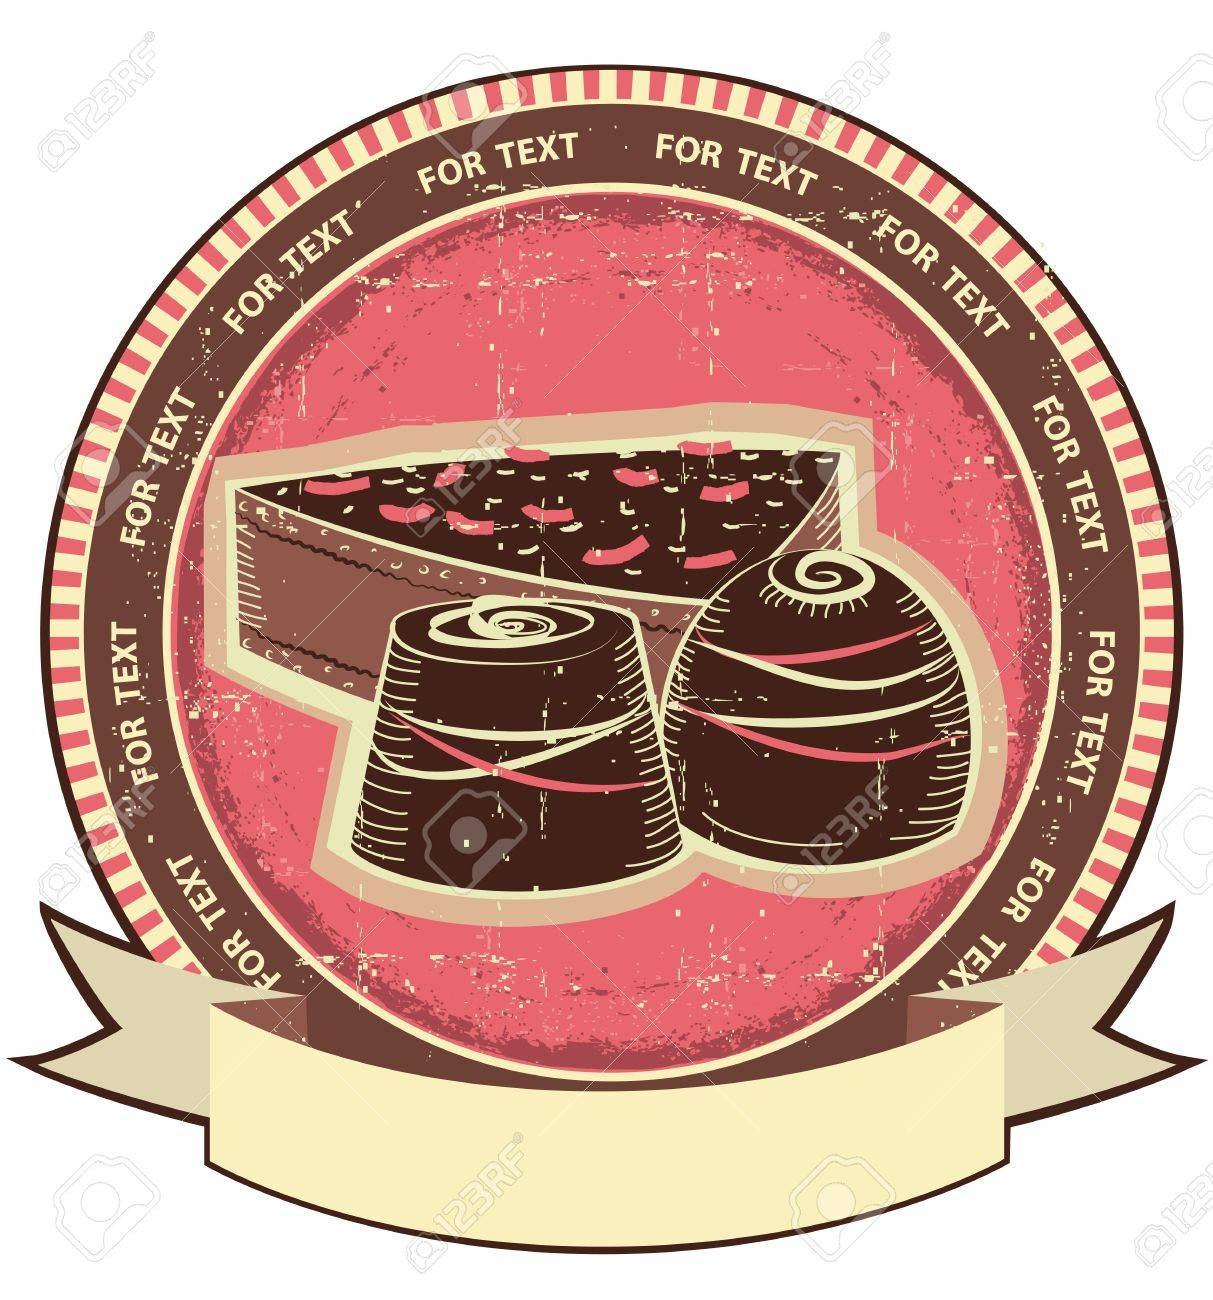 Chocolate sweets on old label vintage background Stock Vector - 16170214